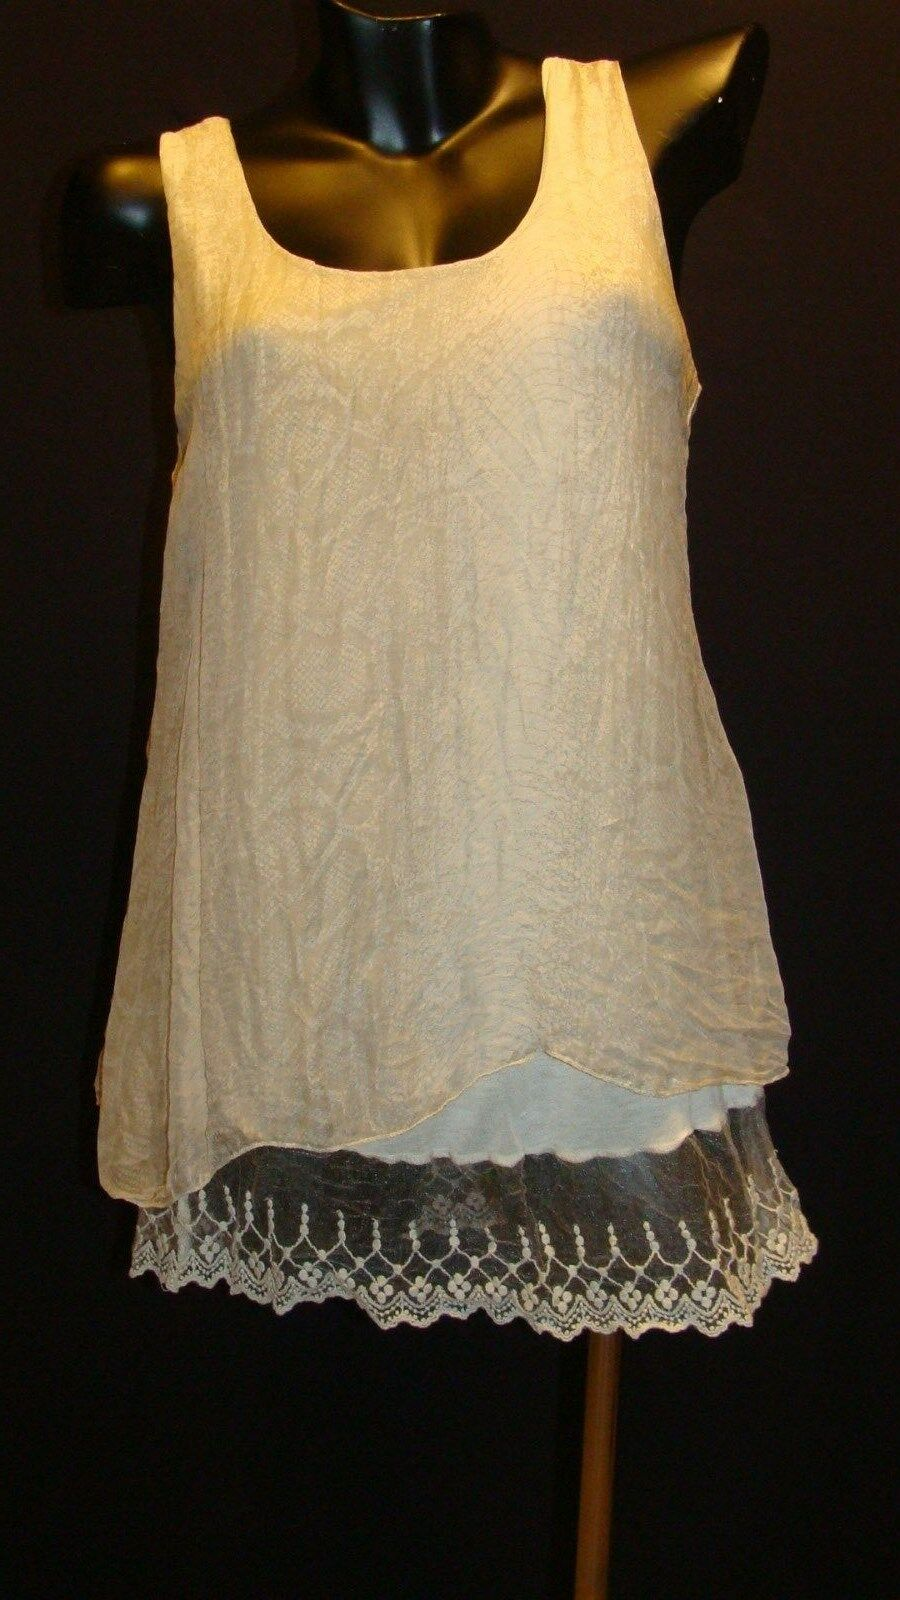 NWOT CARLA CONTI  100% SILK SLEEVELESS ITALIAN TUNICE TOP Größe SMALL